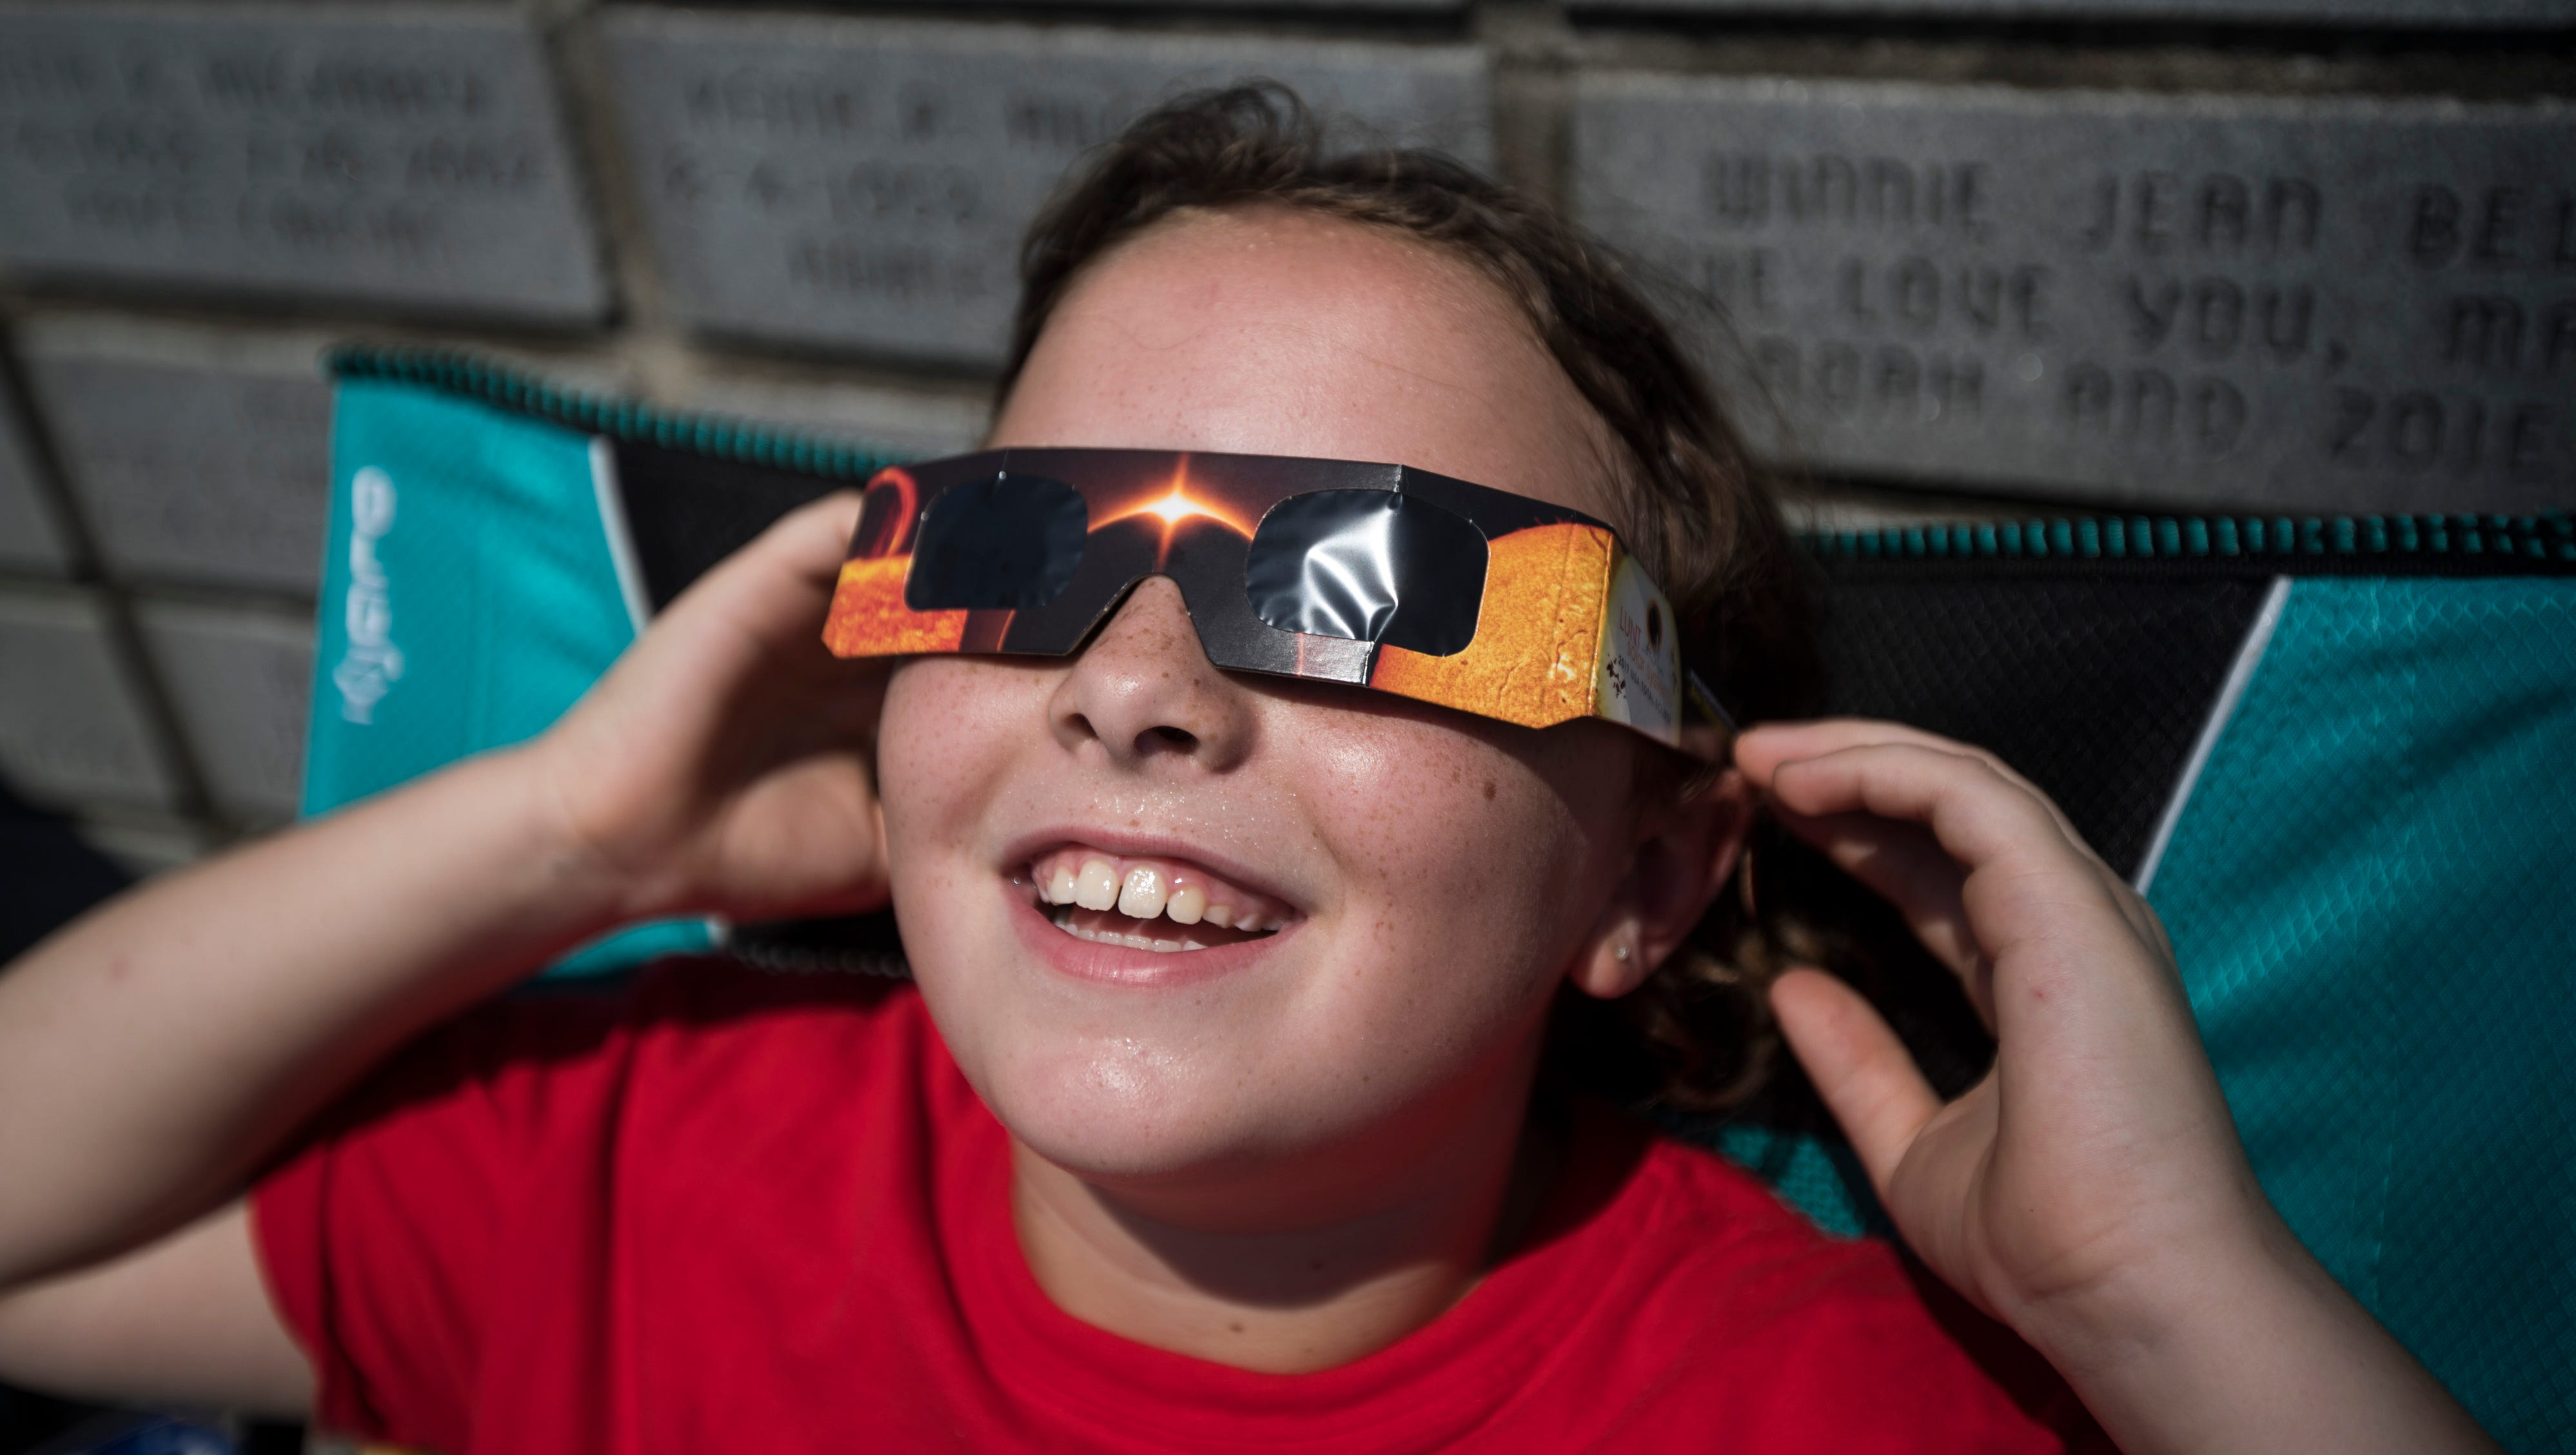 Eclipse Glasses Are They Reusable Or Not